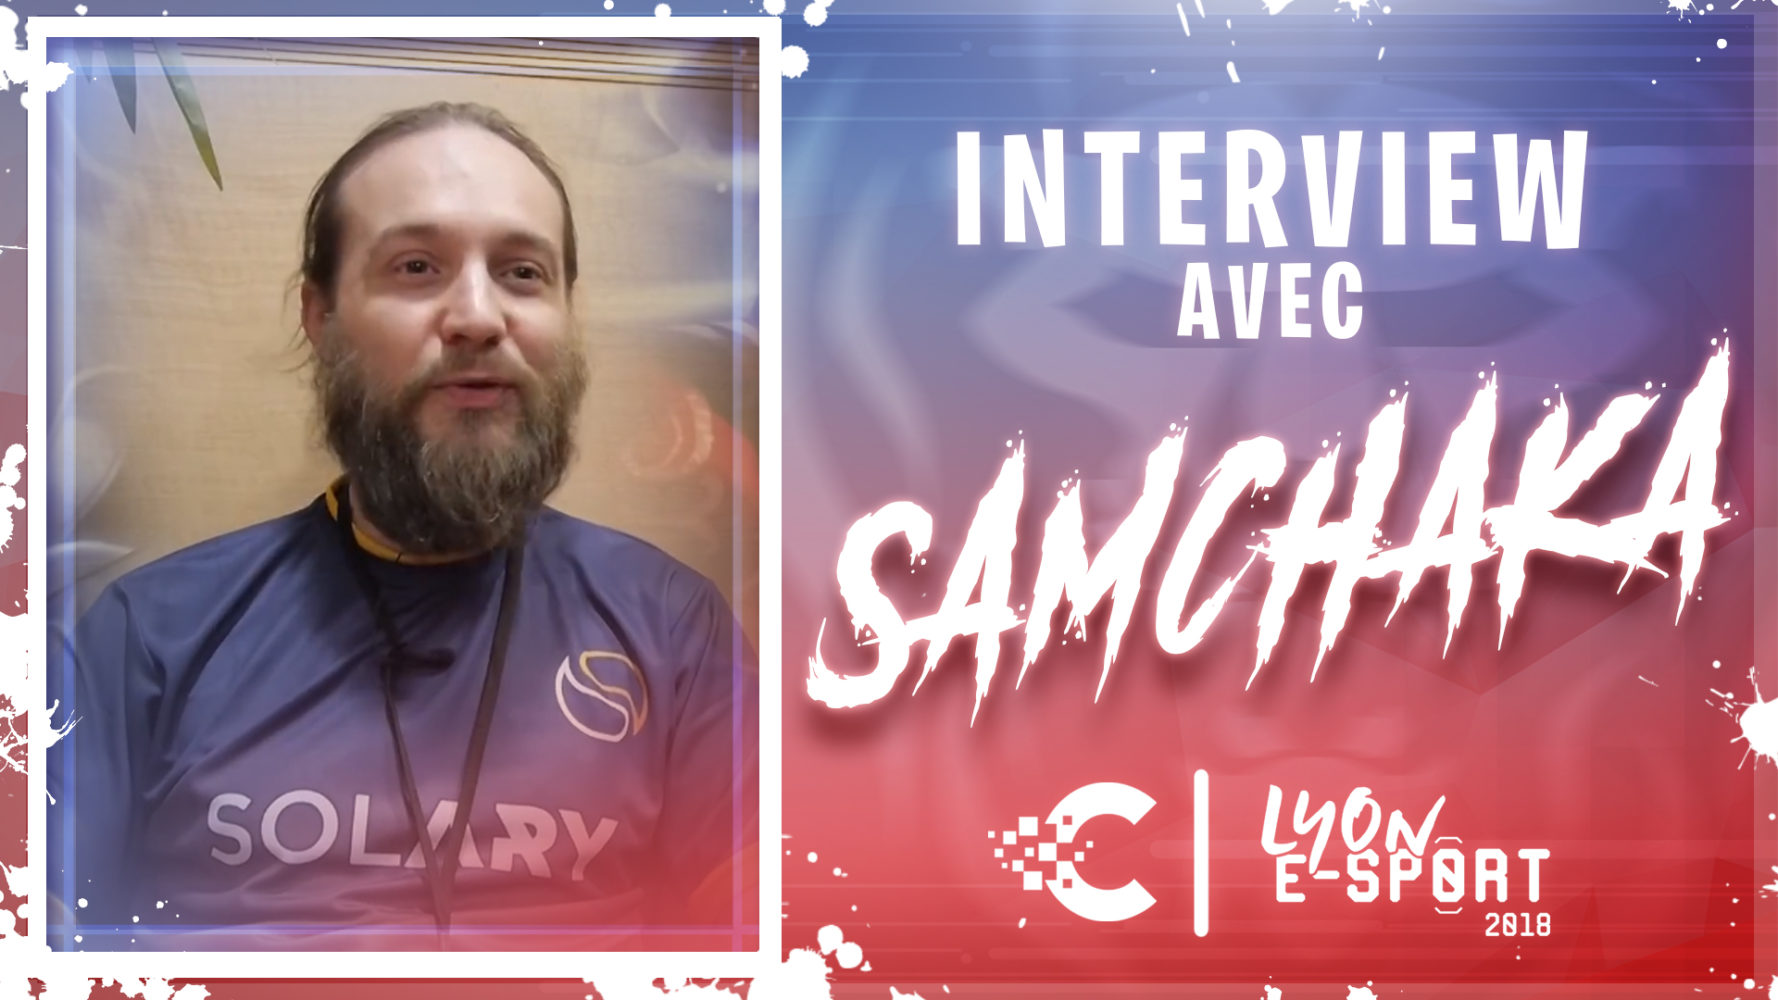 samchaka interview